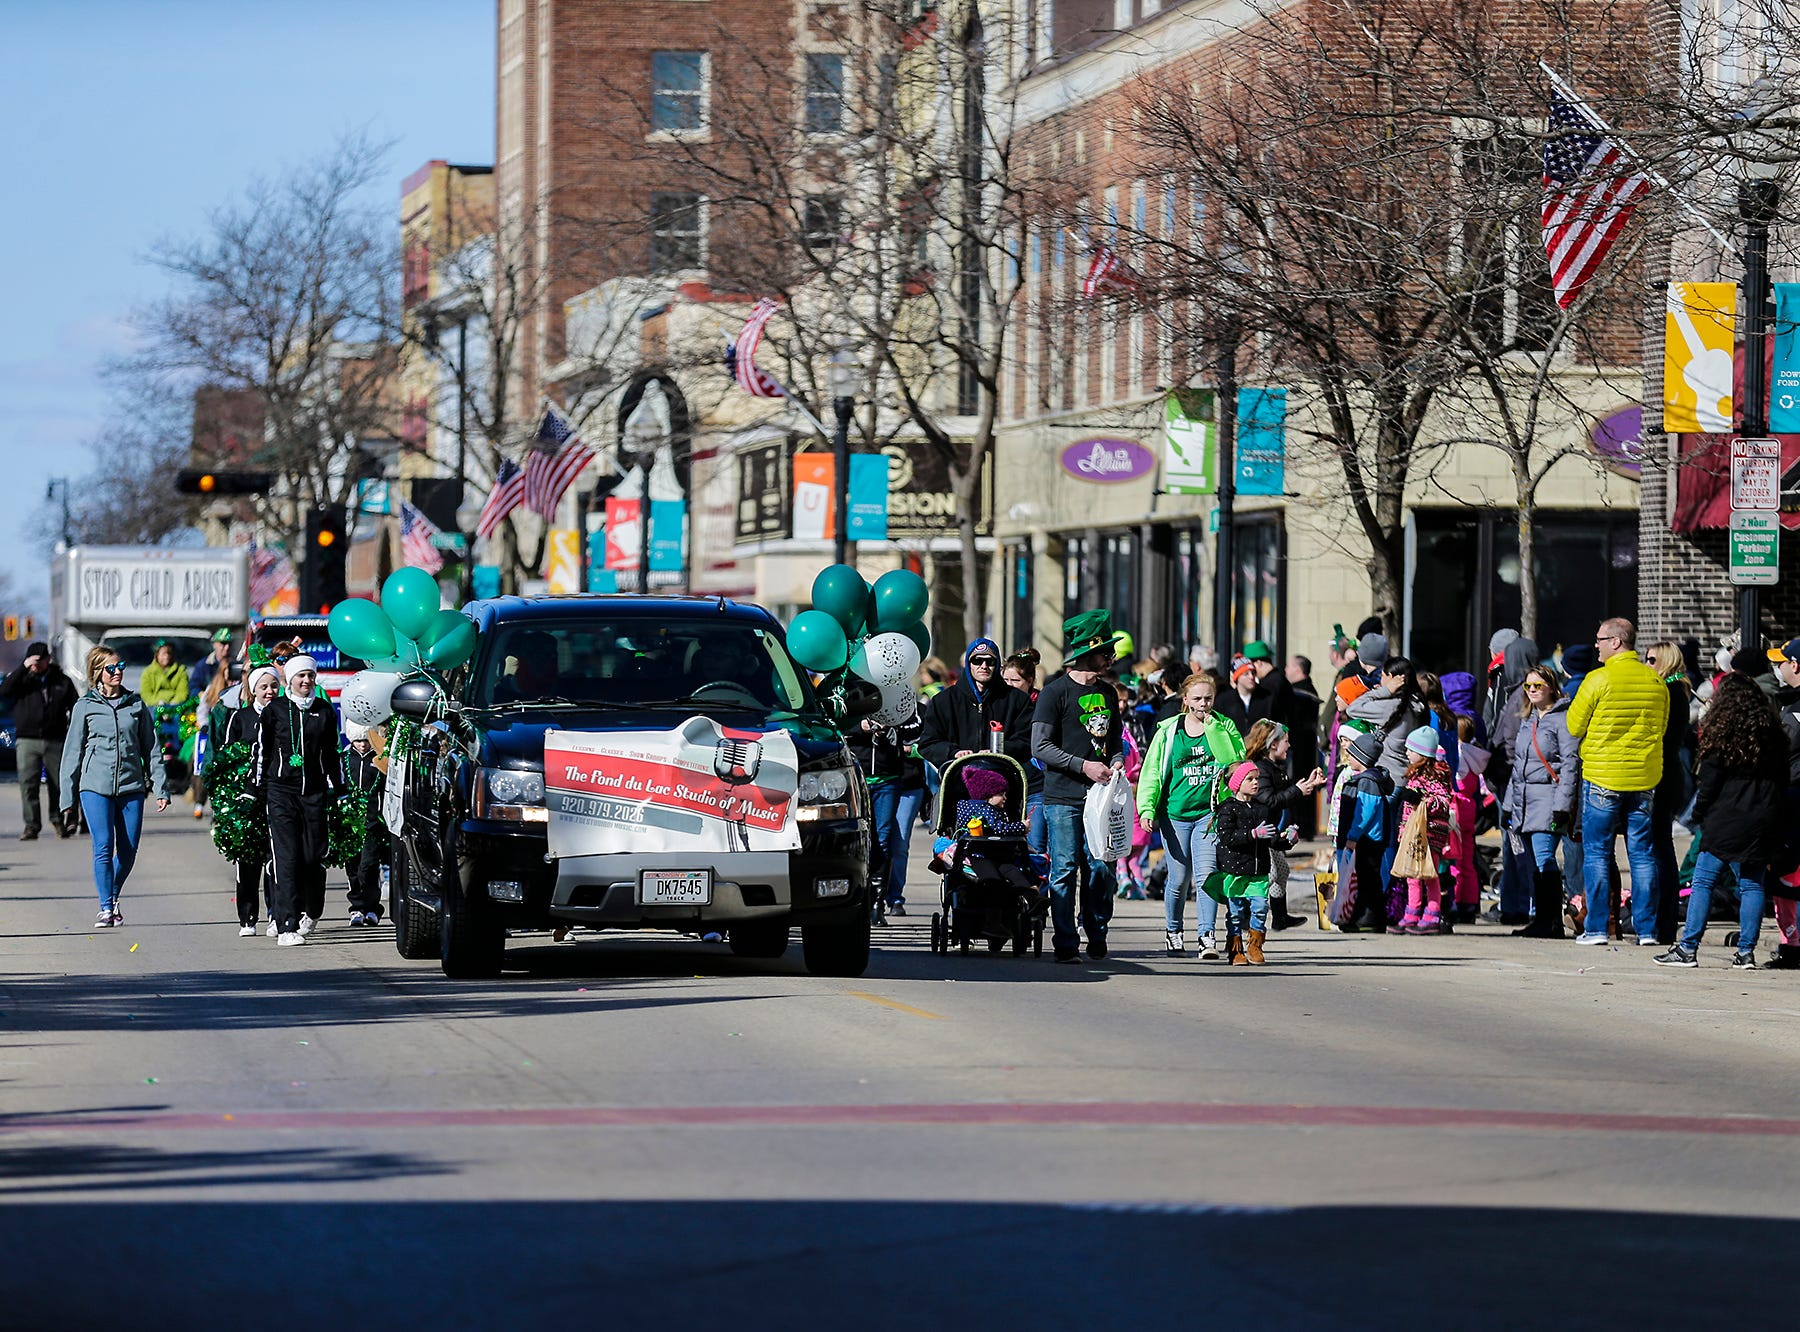 The Fond du Lac Studio of Music participated in the City of Fond du Lac St. Patrick's Day Parade Saturday, March 16, 2019 on Main Street in downtown Fond du Lac. Hundreds of people lined the street to watch over 50 parade participants. Doug Raflik/USA TODAY NETWORK-Wisconsin